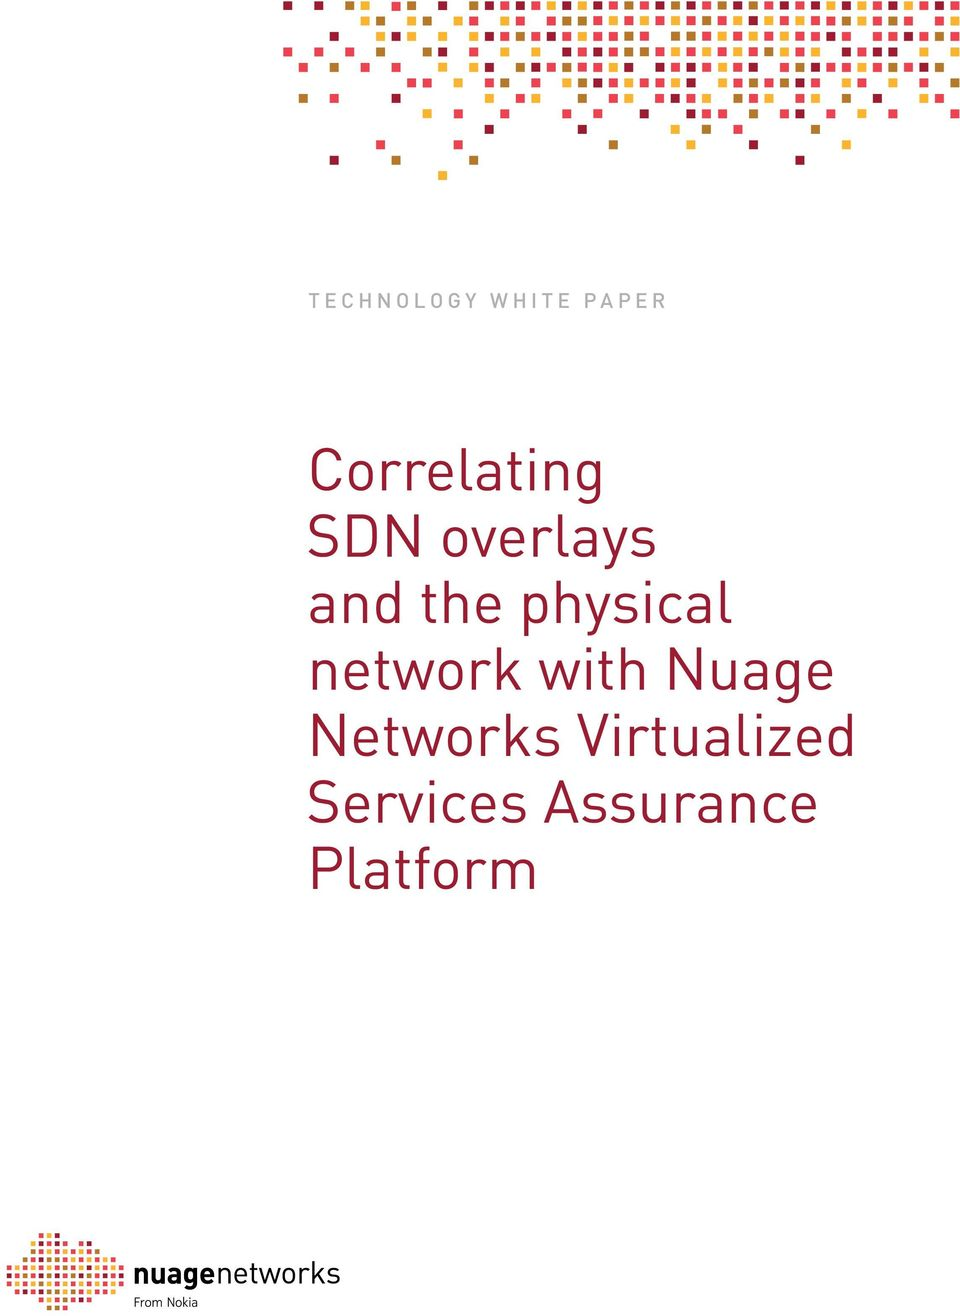 physical network with Nuage